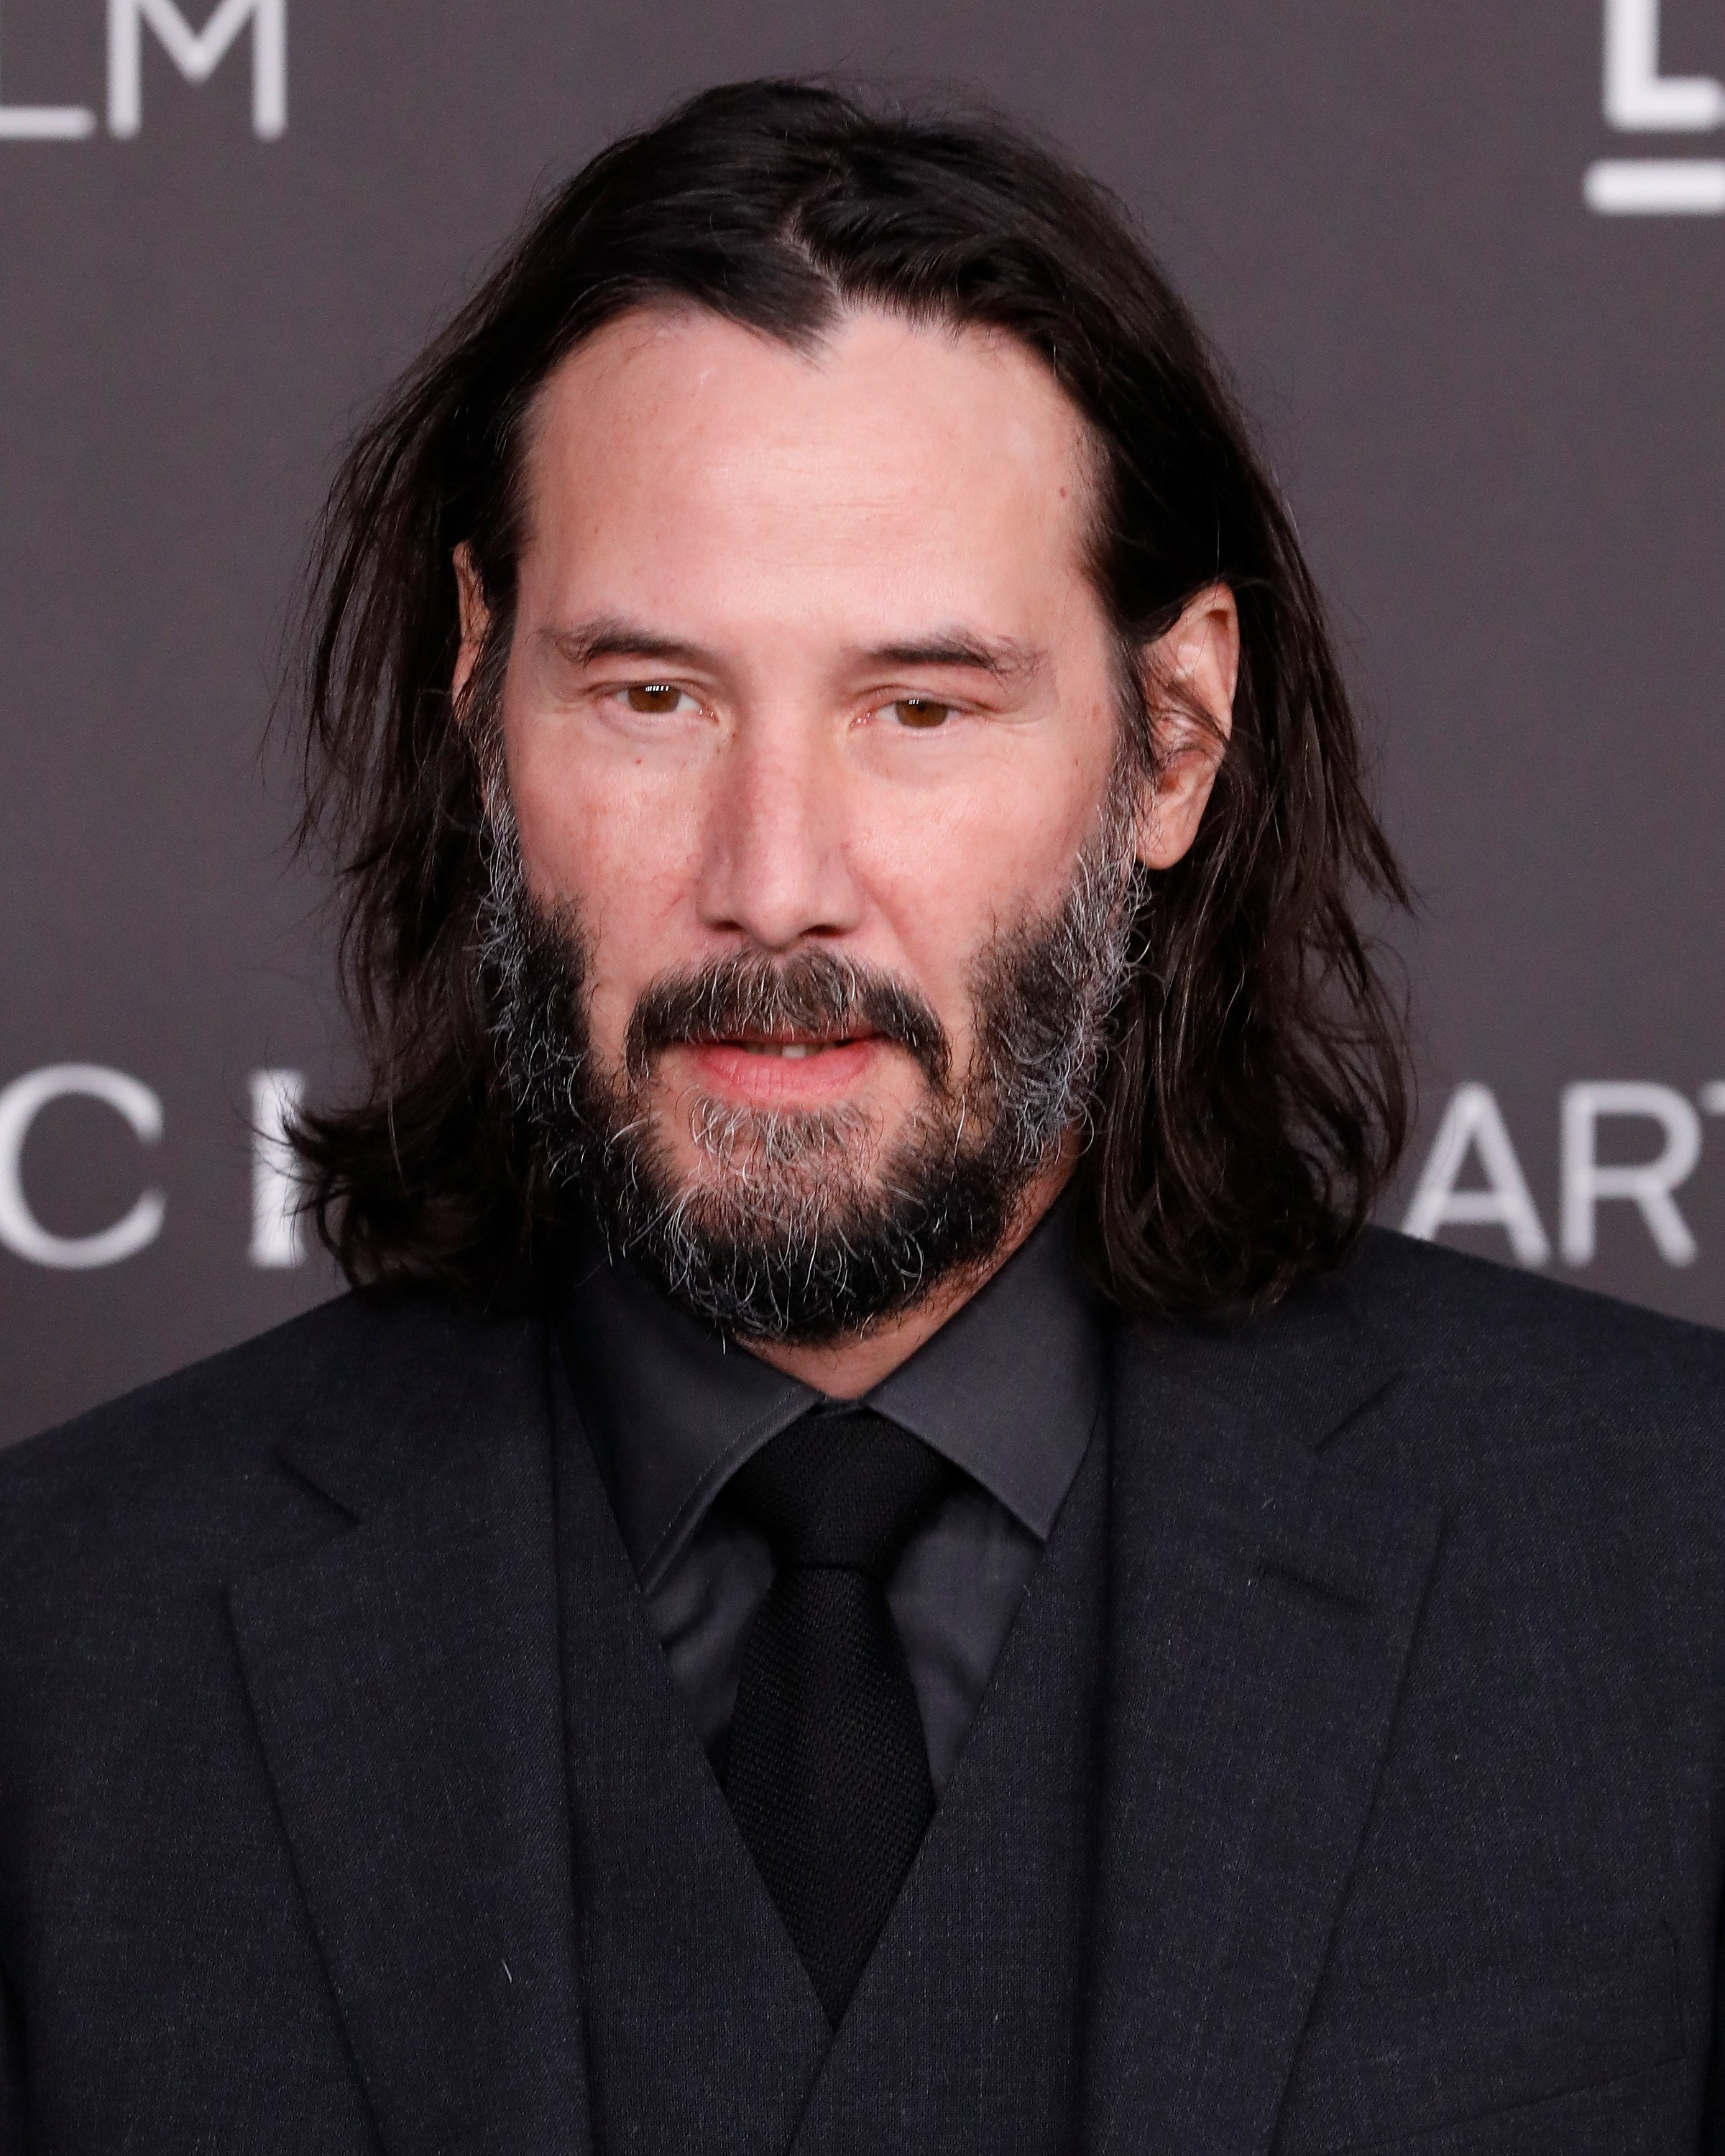 Keanu Reeves, 2019 LACMA Art + Film Gala, 2. November 2019, Los Angeles | Quelle: Getty Images